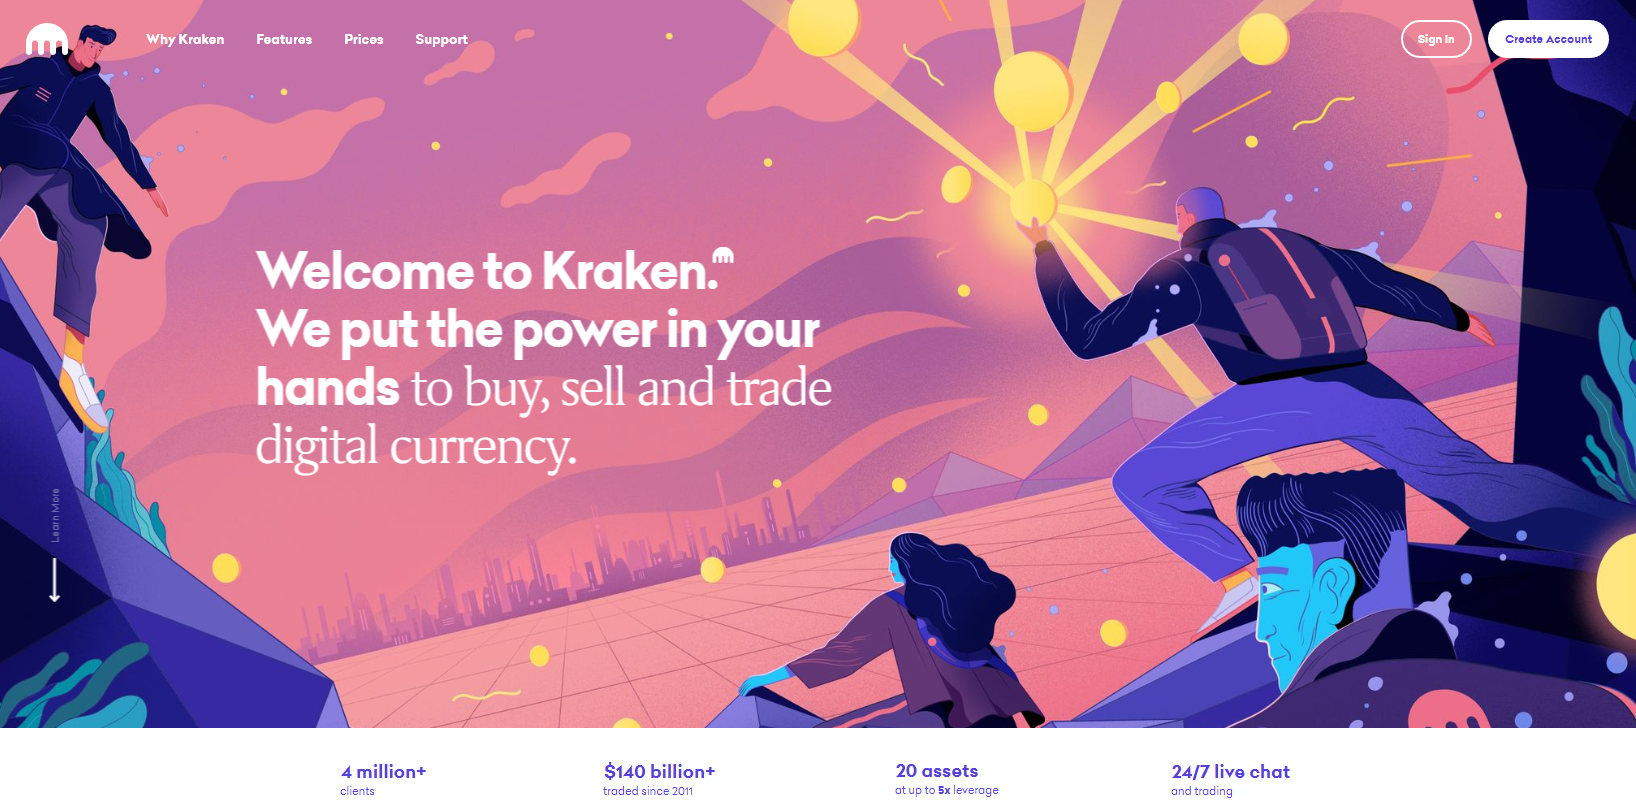 How to Trade Crypto On Kraken - CoinDesk